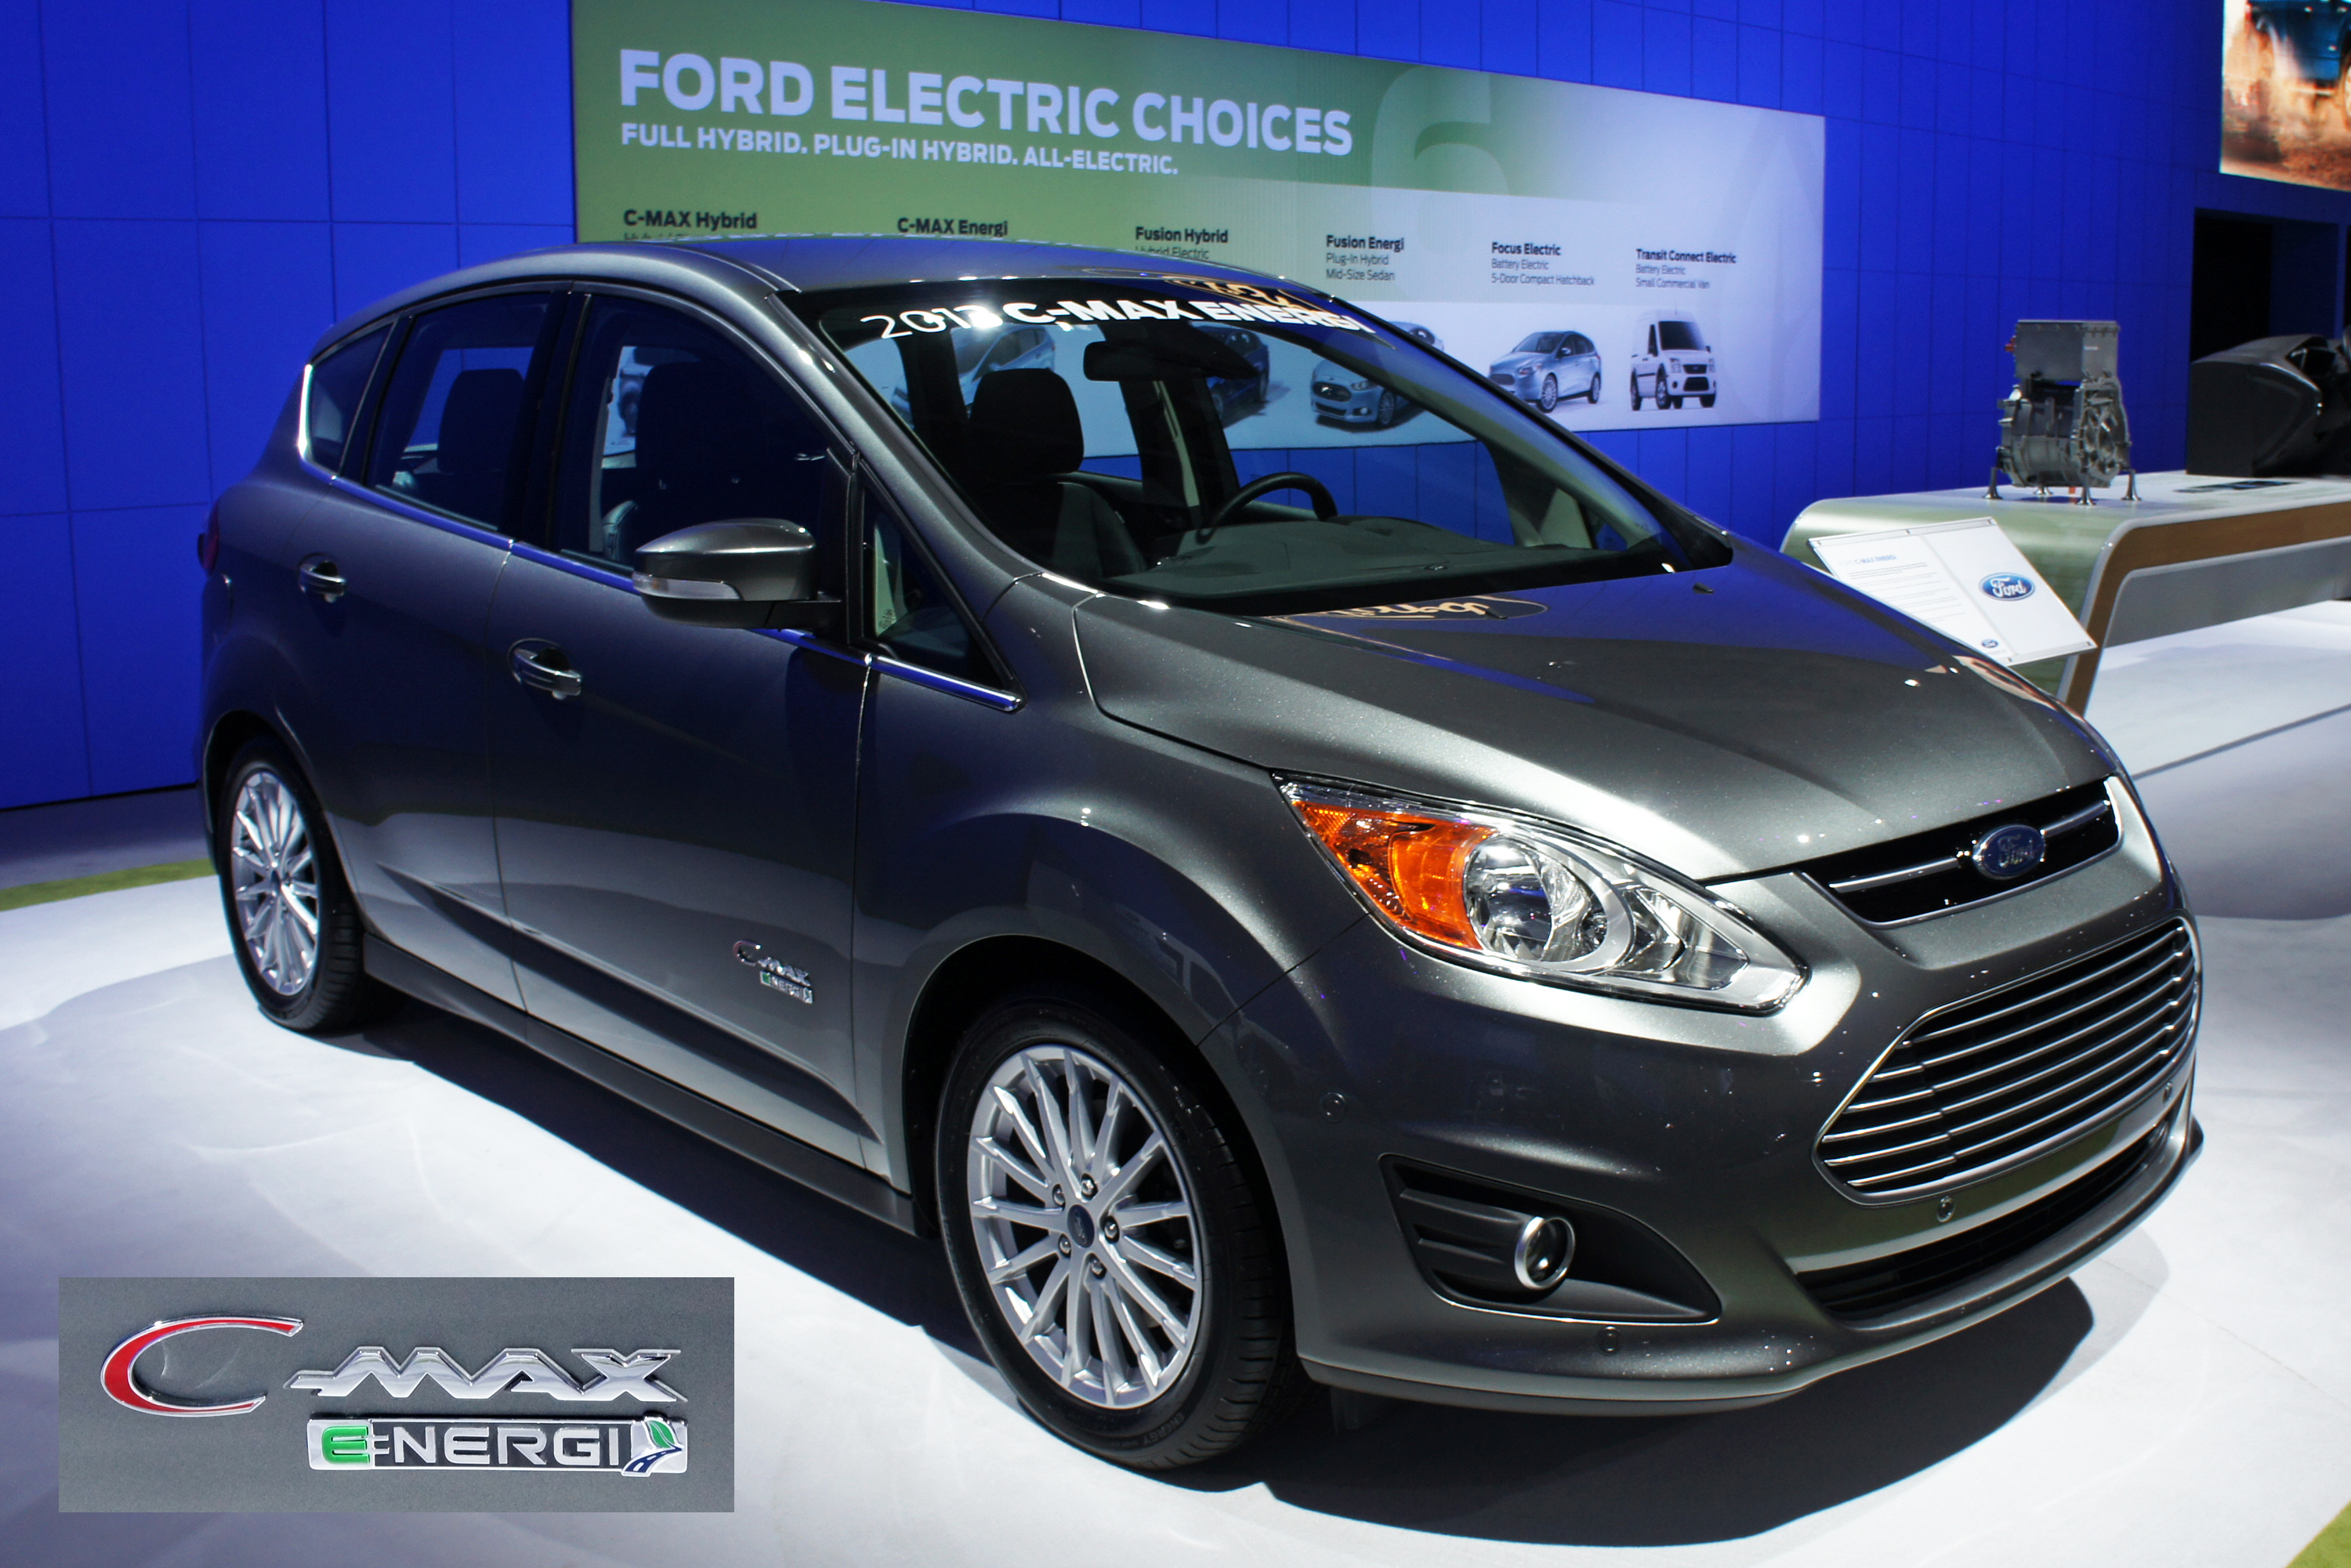 Ford_c Max_energi_with_badge_was___copy Jpg